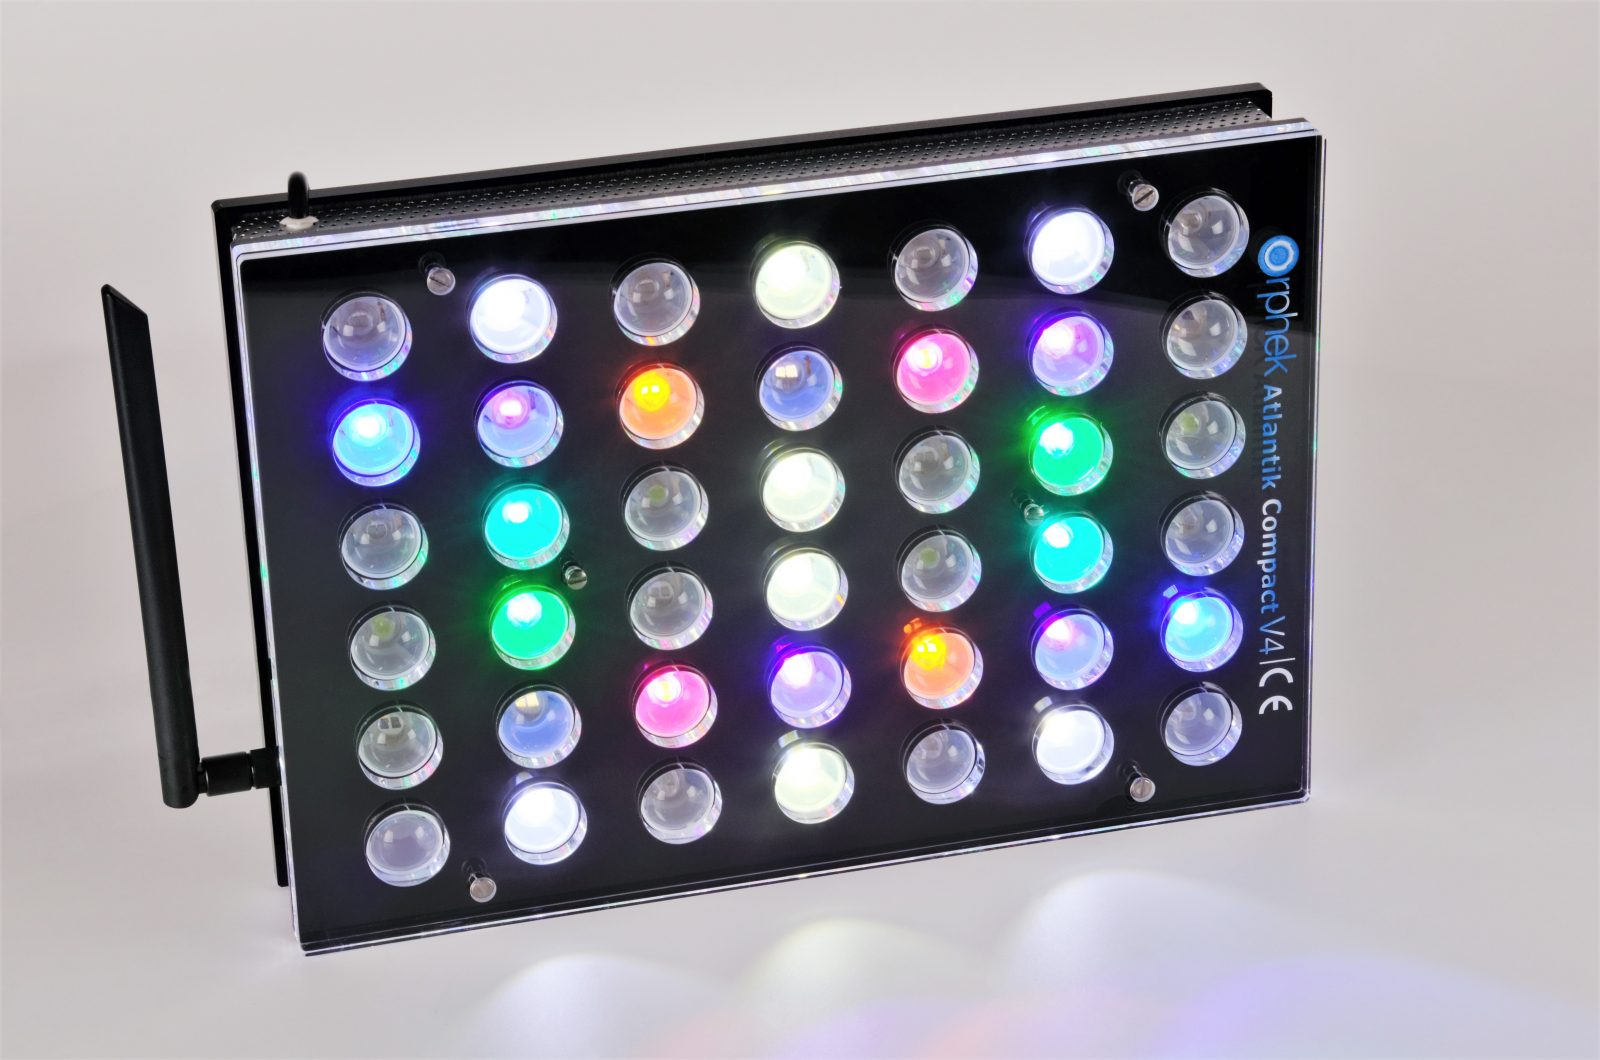 Orphek-Aquarium-LED-Lighting-Atlantik-کمپیکٹ- V4-روشنی -لینلینل 1 + 3 + 4